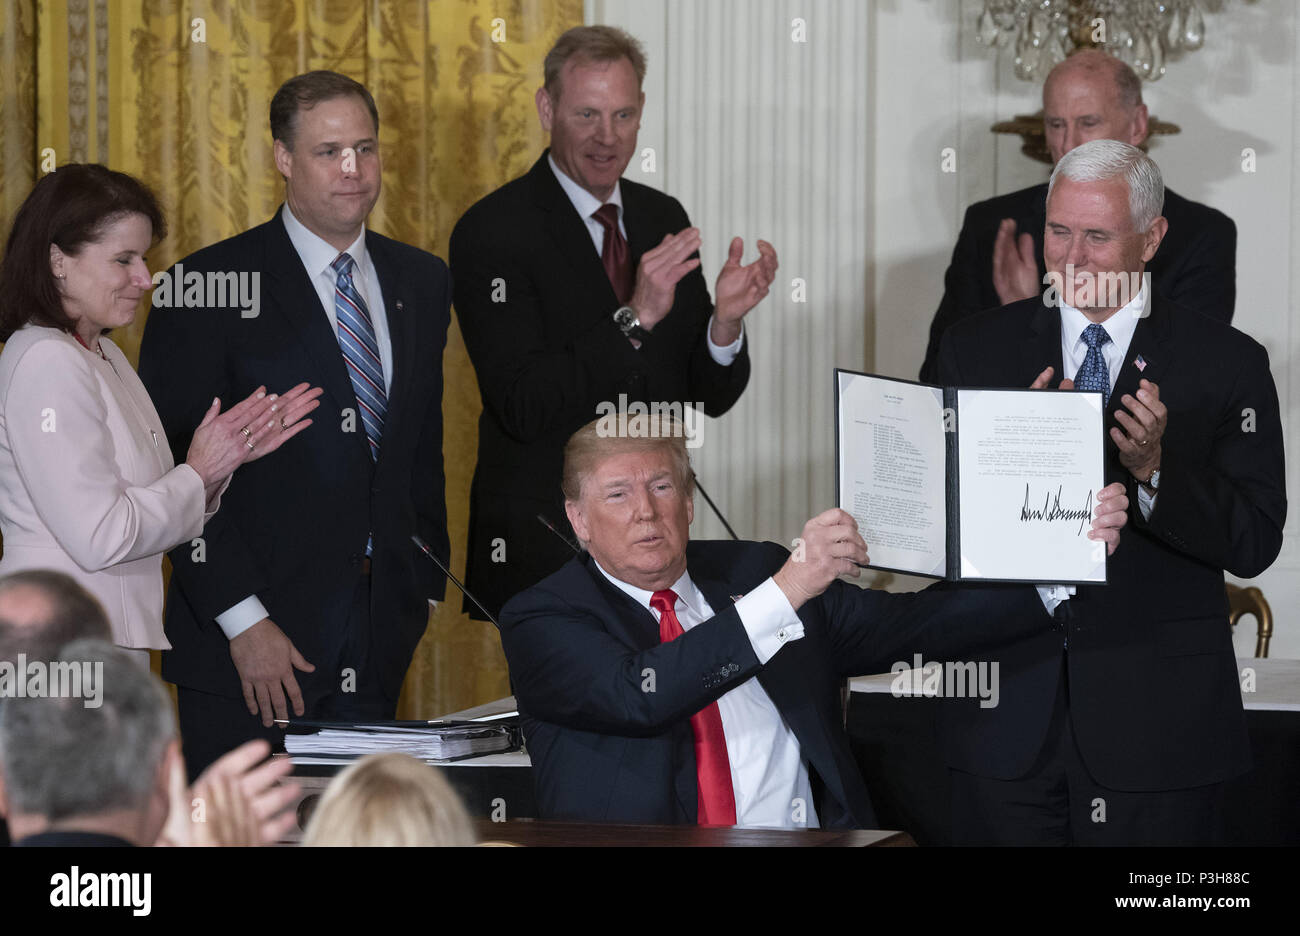 Washington, District of Columbia, USA. 18th June, 2018. United States President Donald J. Trump displays Space Policy Directive 3, signed during a meeting of the National Space Council at The White House in Washington, DC, June 18, 2018. The directive addresses issues including monitoring of objects in orbit, providing that information to spacecraft operators to avoid collisions, and to limit the growth of orbital debris. Chris Kleponis/CNP Credit: Chris Kleponis/CNP/ZUMA Wire/Alamy Live News - Stock Image